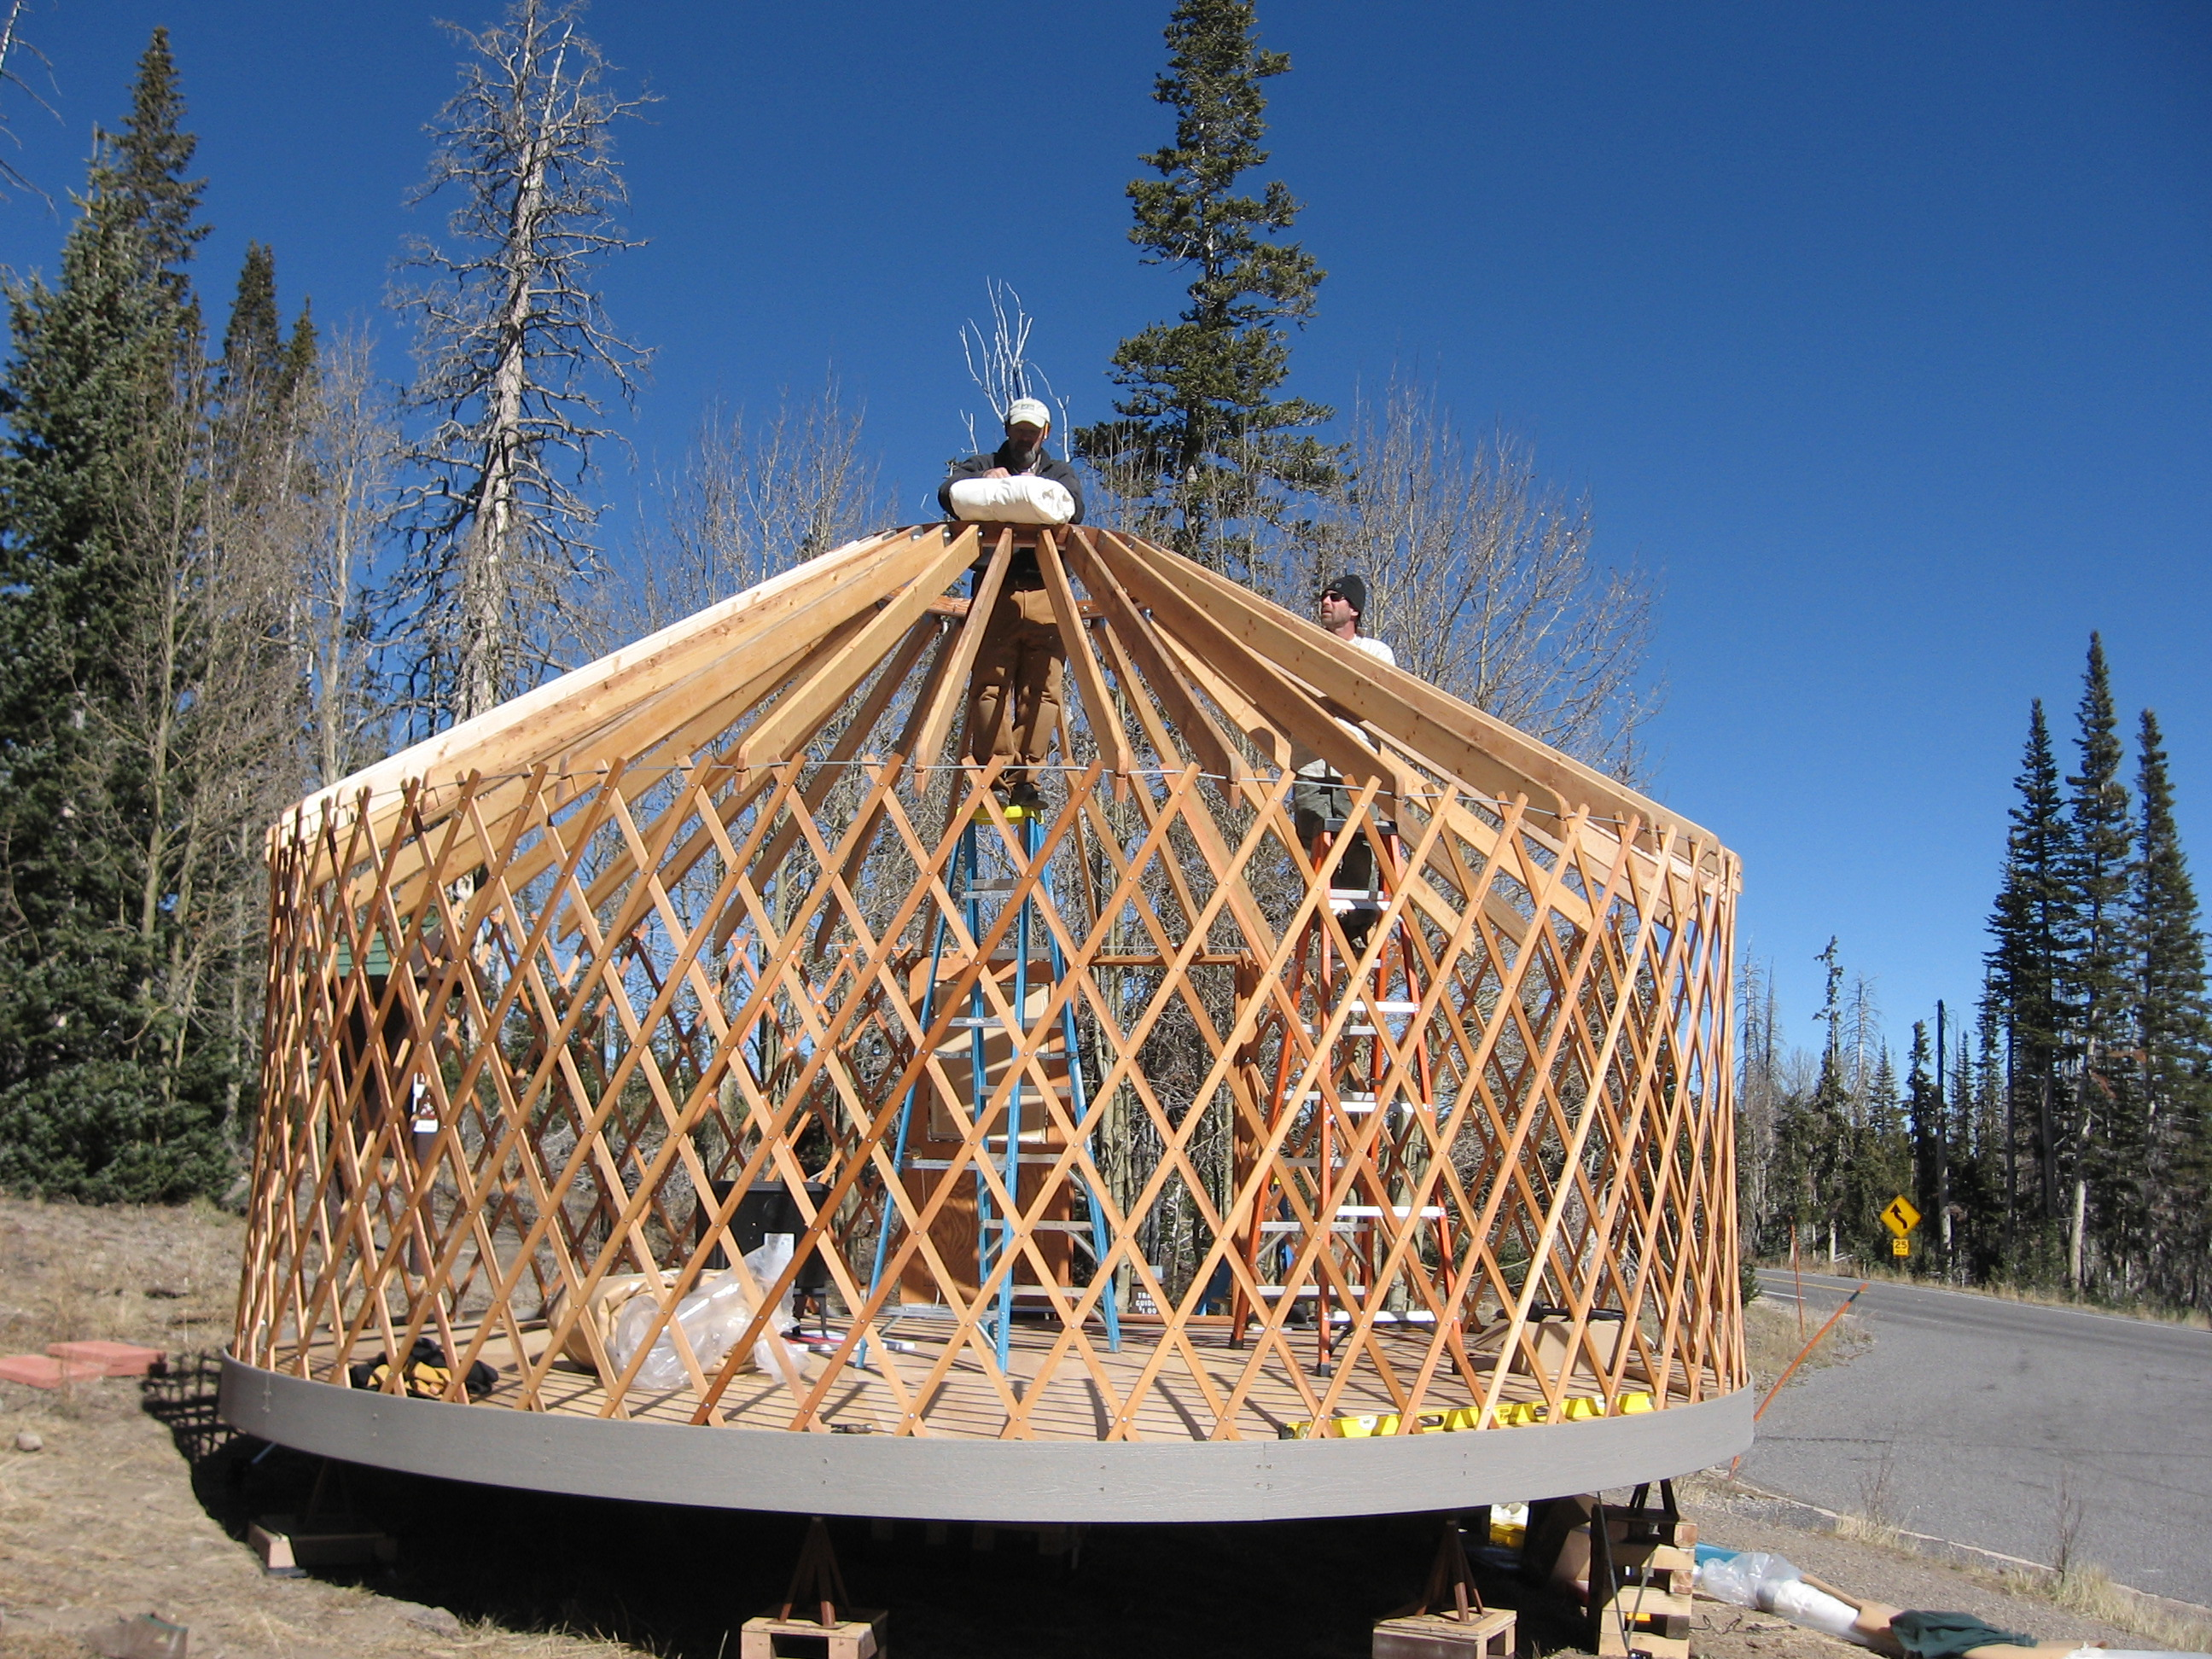 The Yurt framework